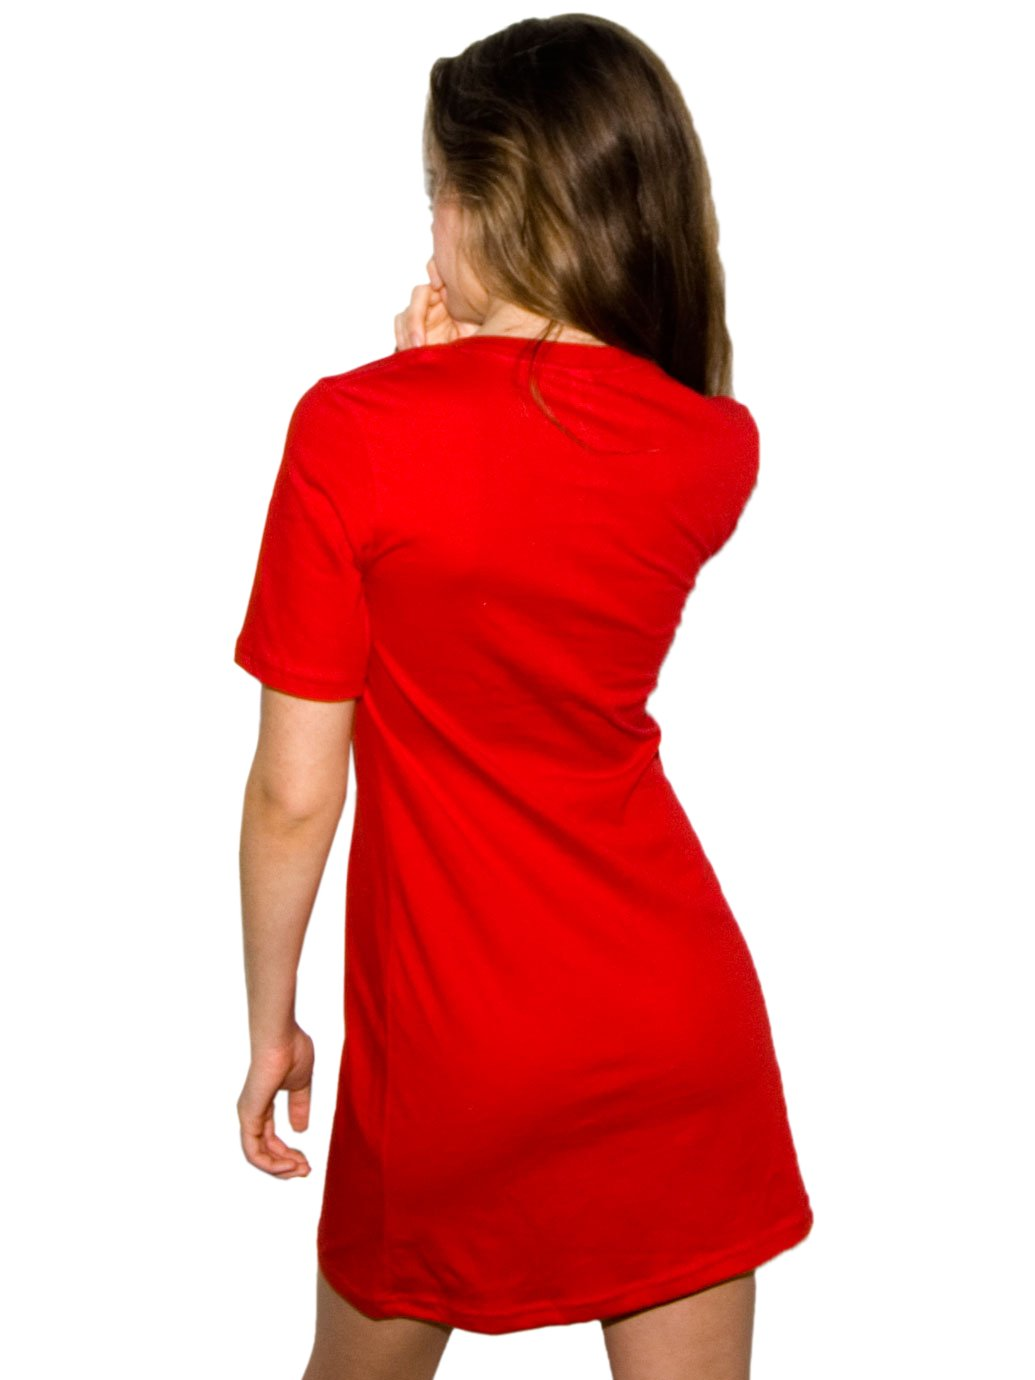 5021e0f0453b2 ... American Apparel Fine Jersey Short Sleeve Crew Neck T-Shirt Dress  Female Red